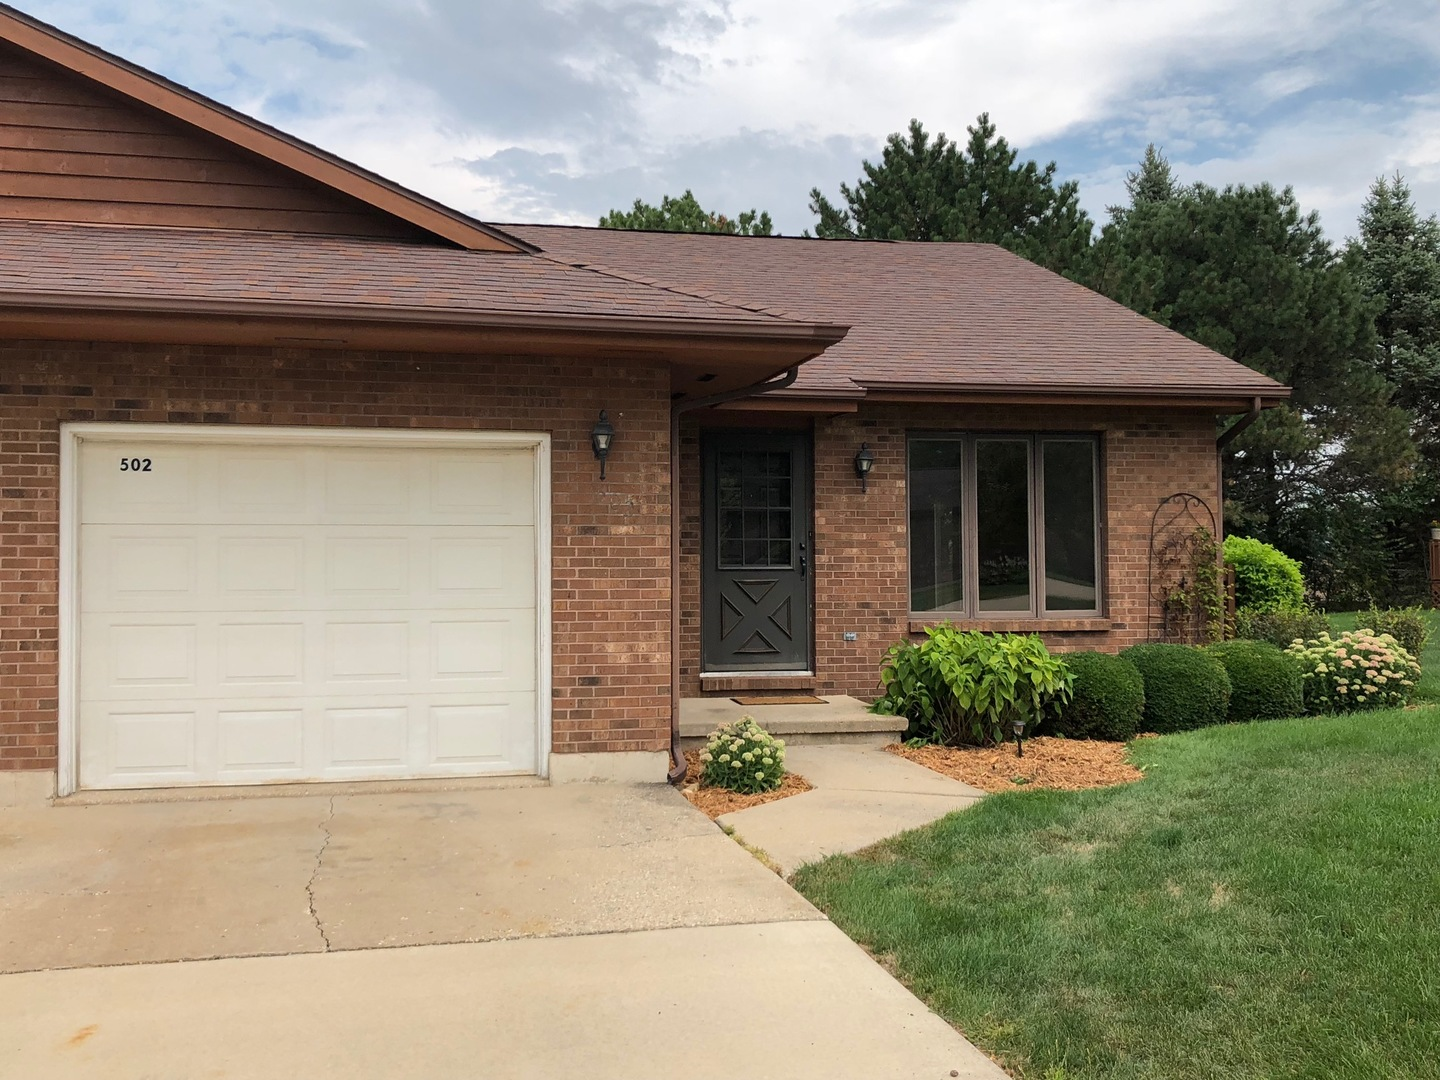 6211 Maple Unit Unit 502 ,Marengo, Illinois 60152